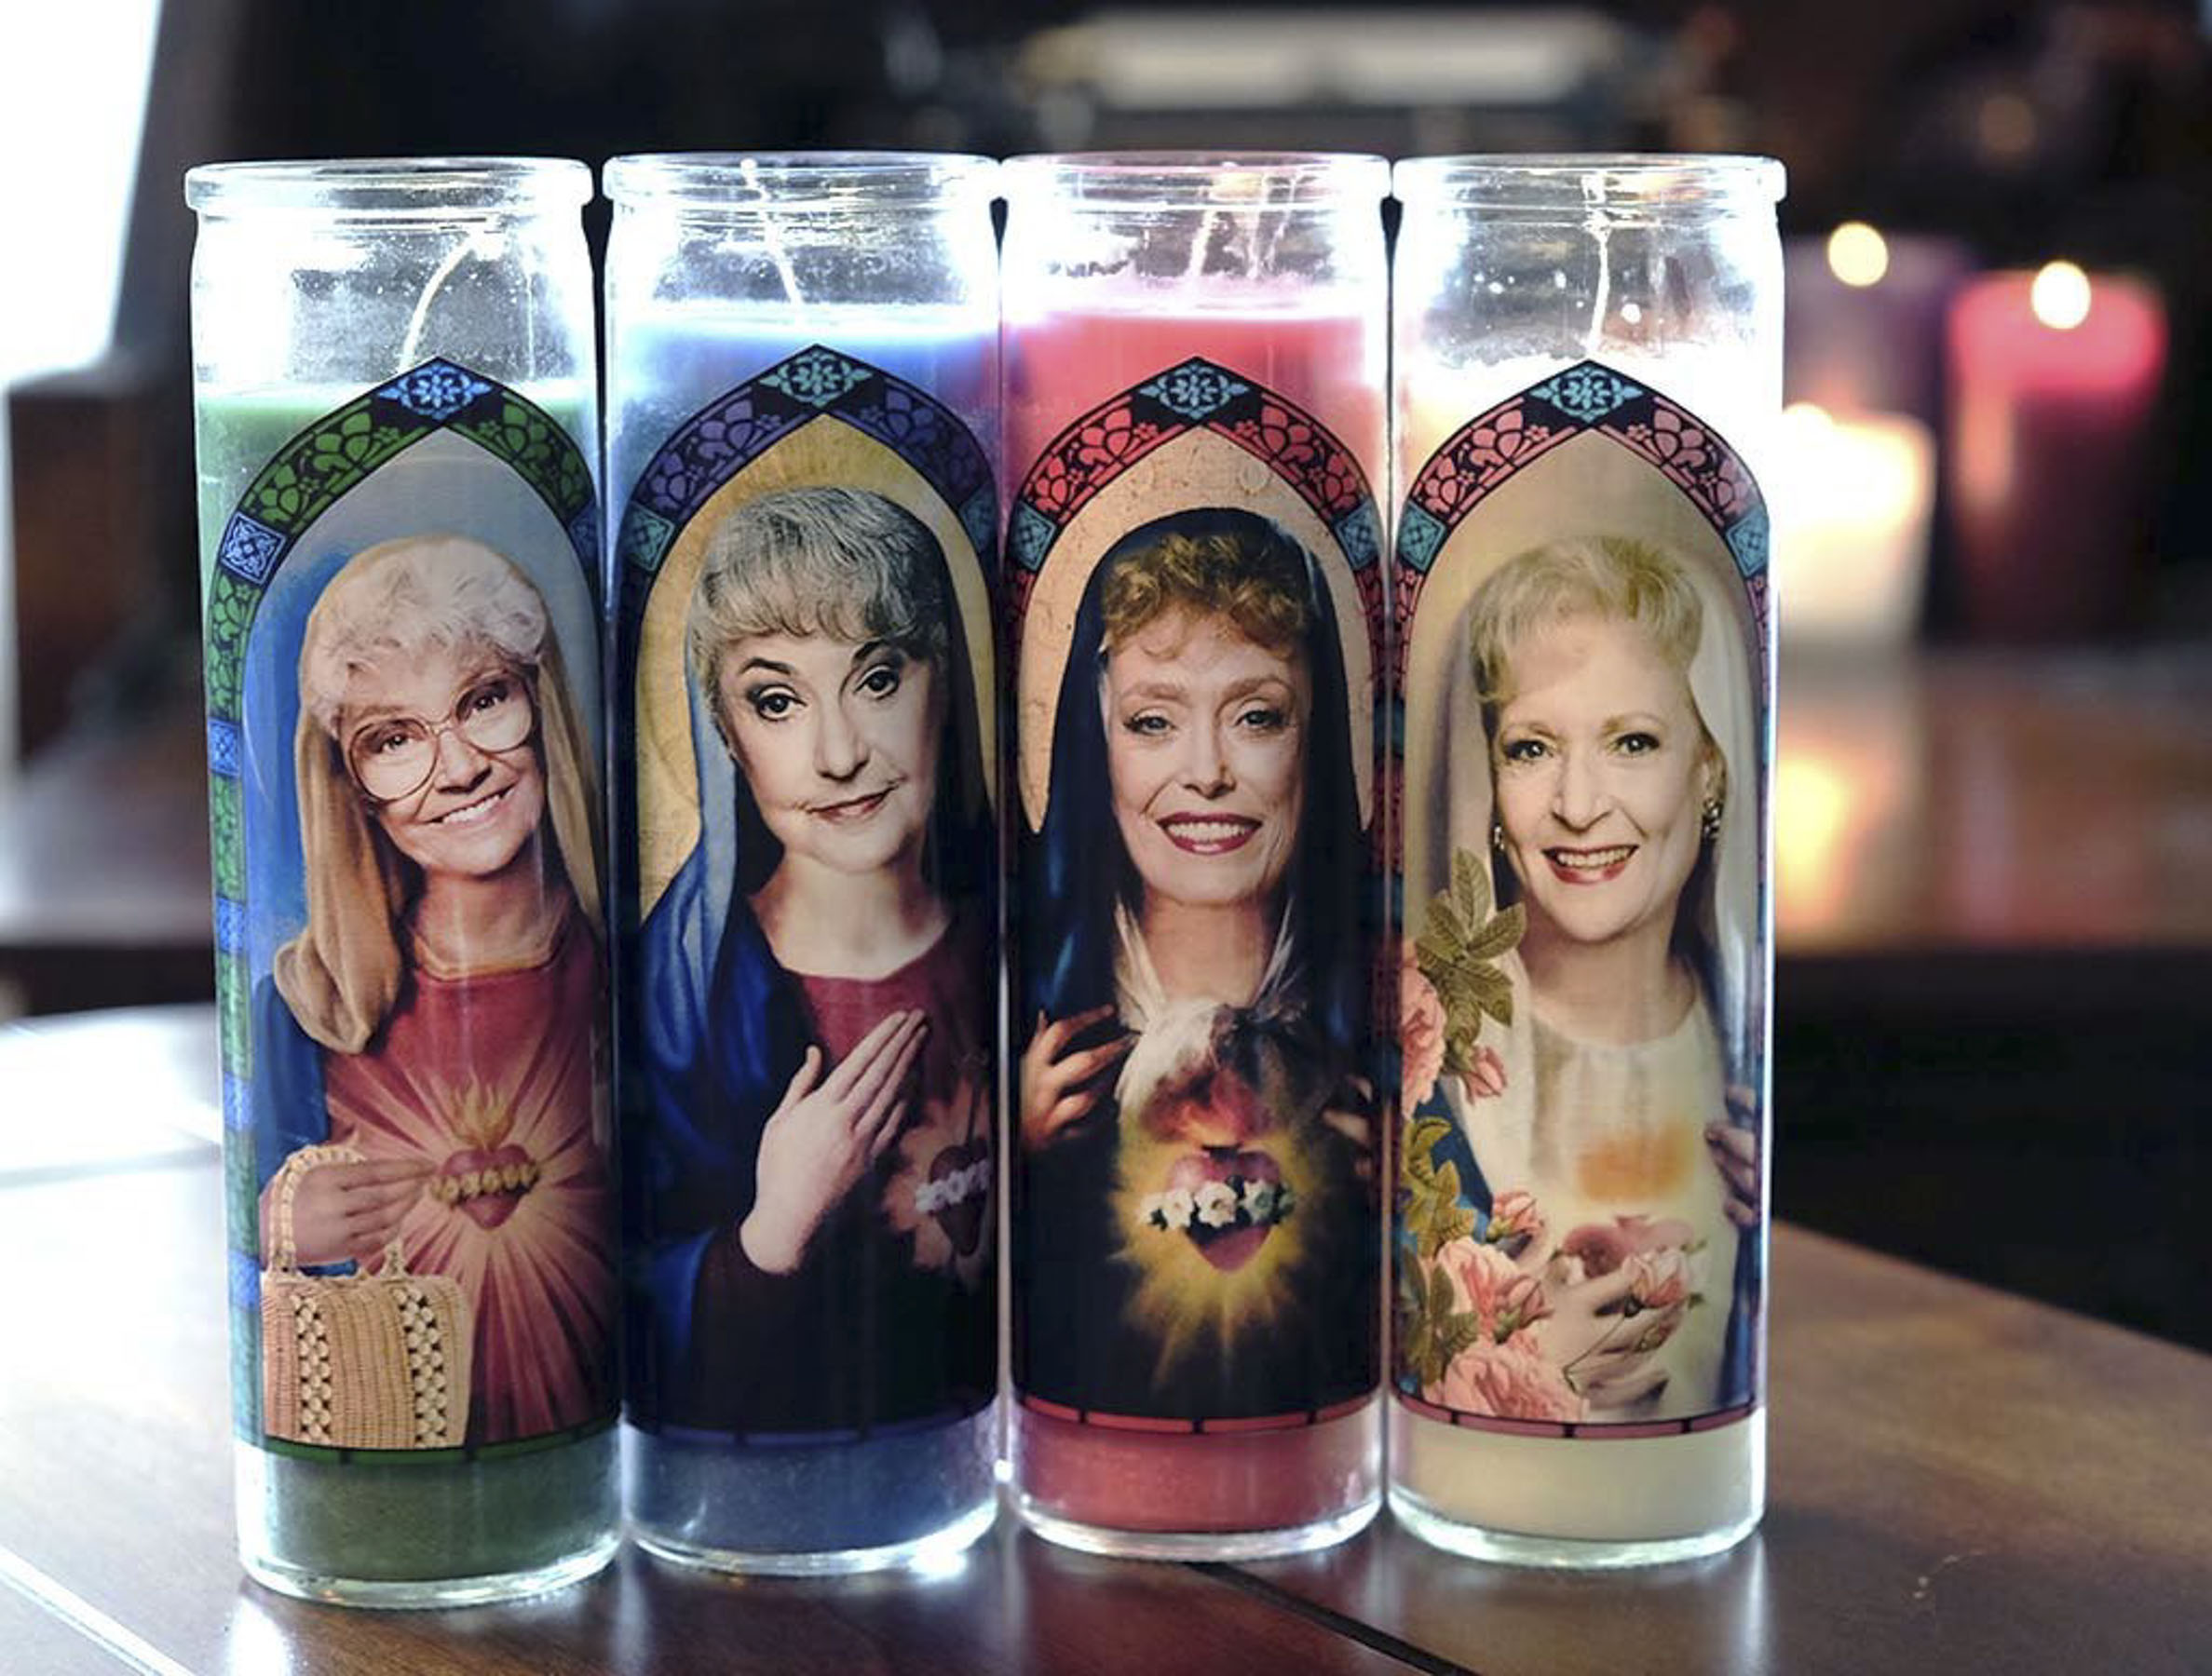 Praise Be! Light Up Your Holiday Season with These Golden Girls Candles—Yes, Really